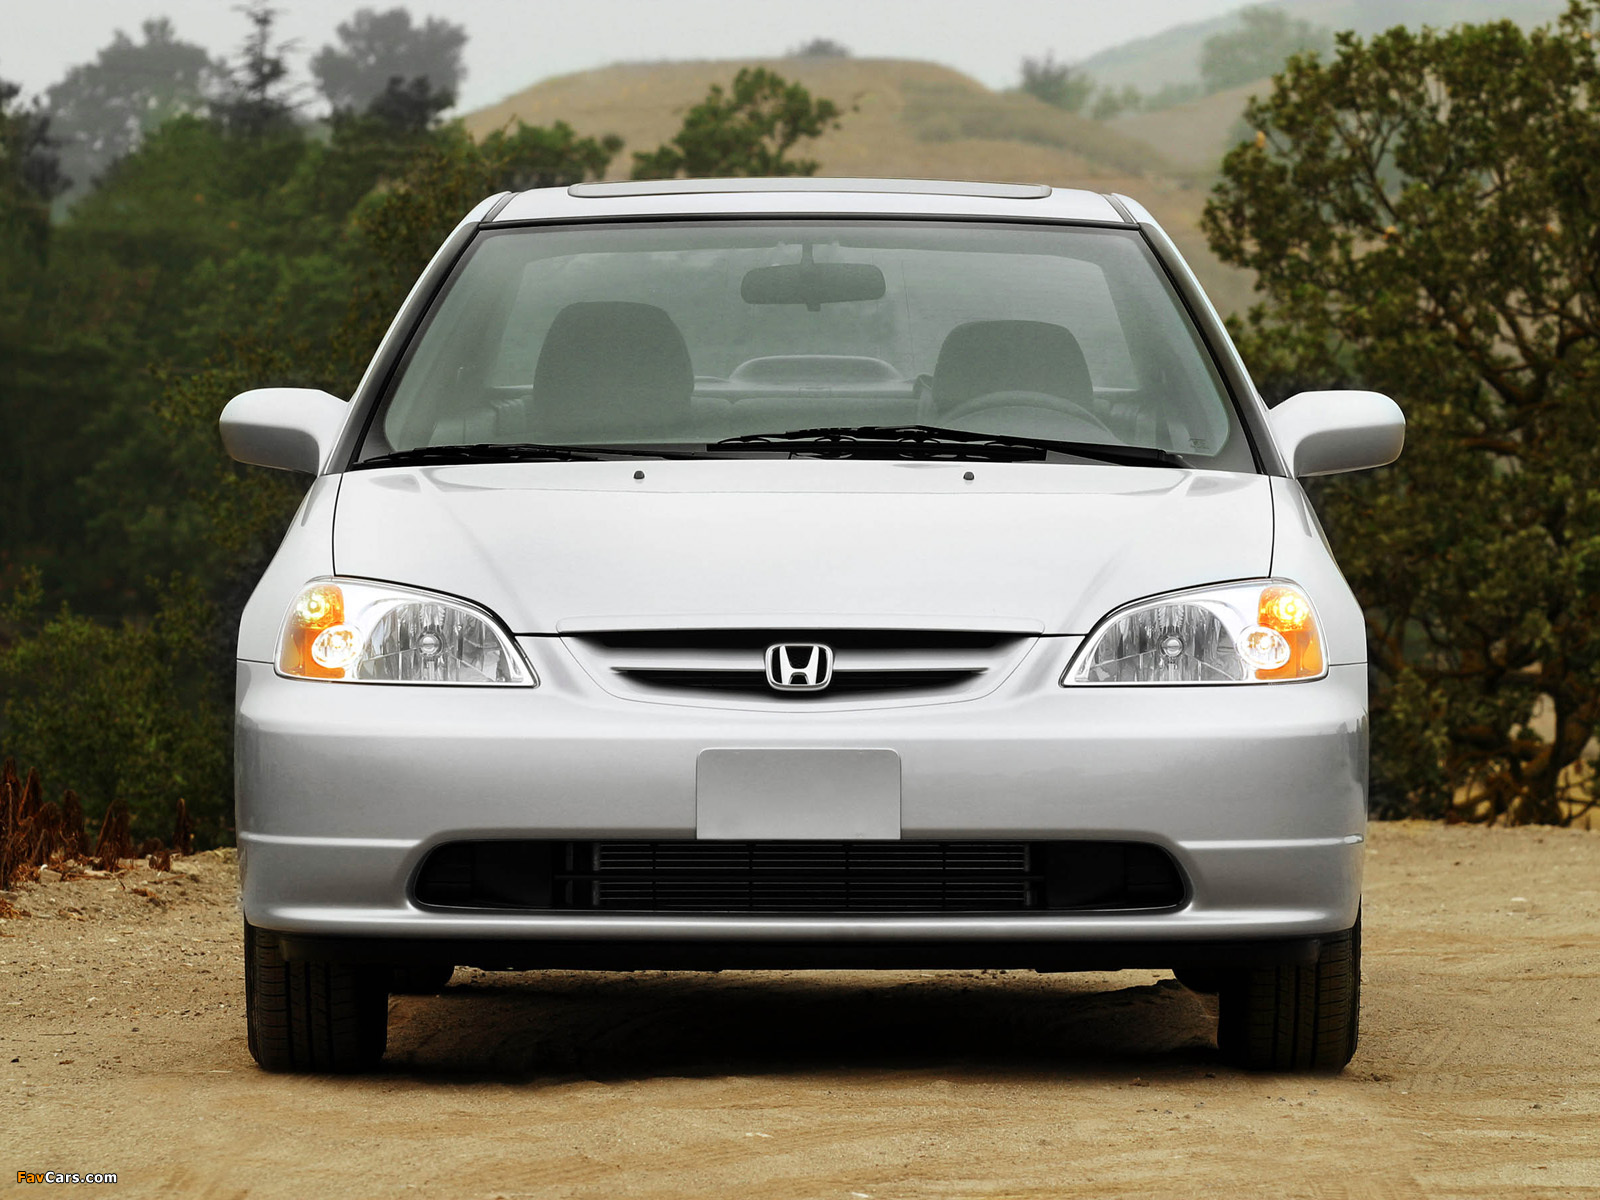 Image Result For Honda Civic Car Information